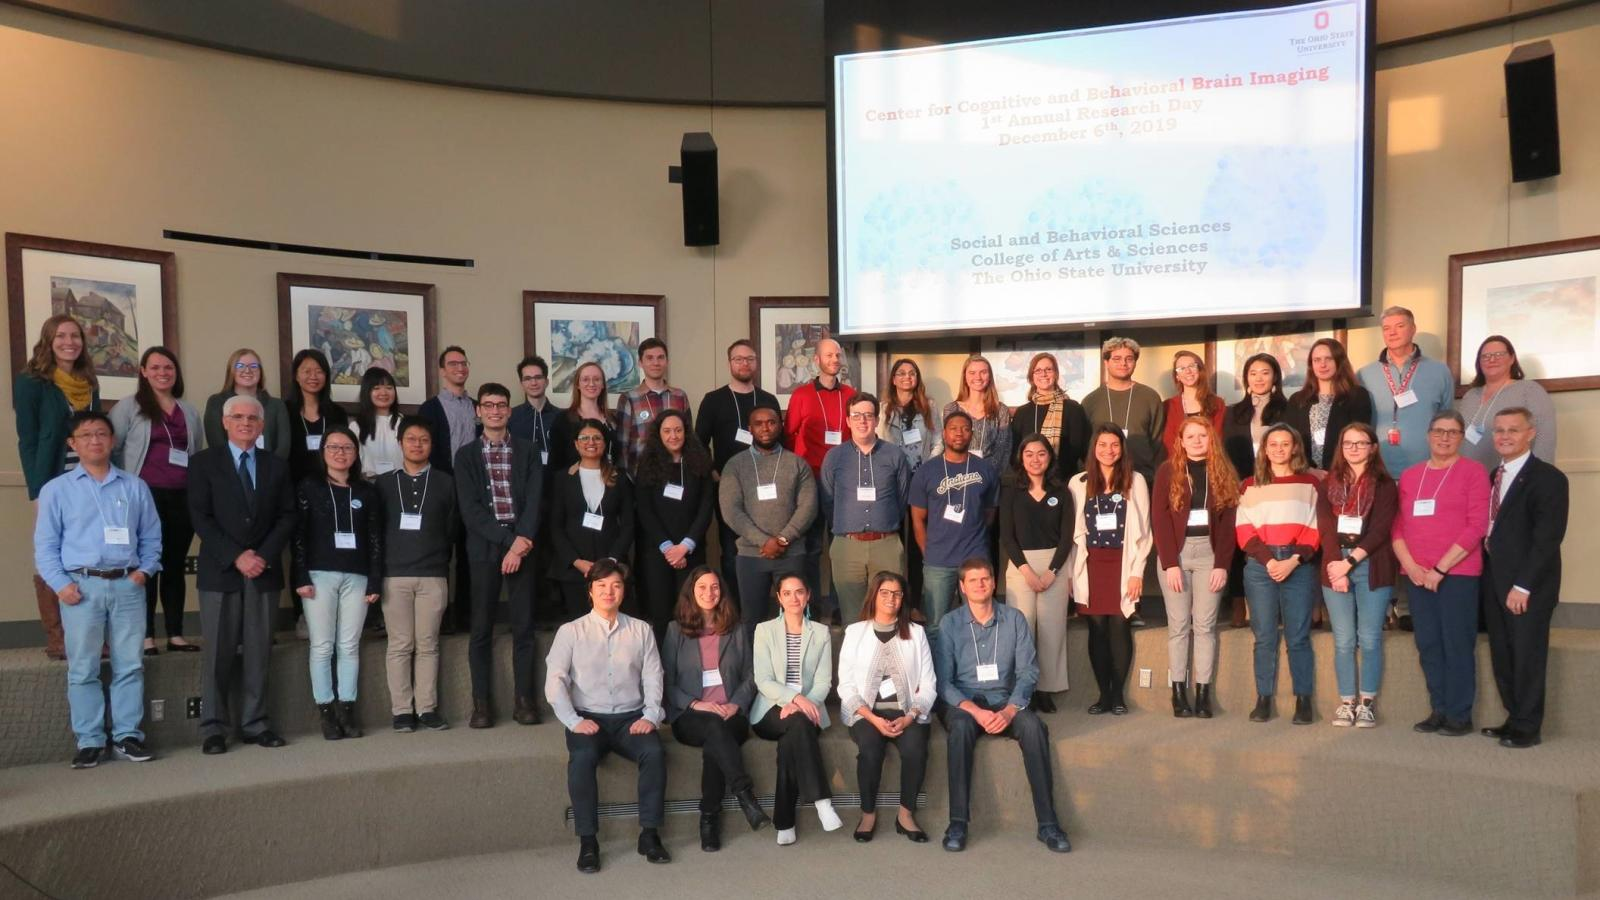 Presenters and attendees pose for a group photo at CCBBI Research Day